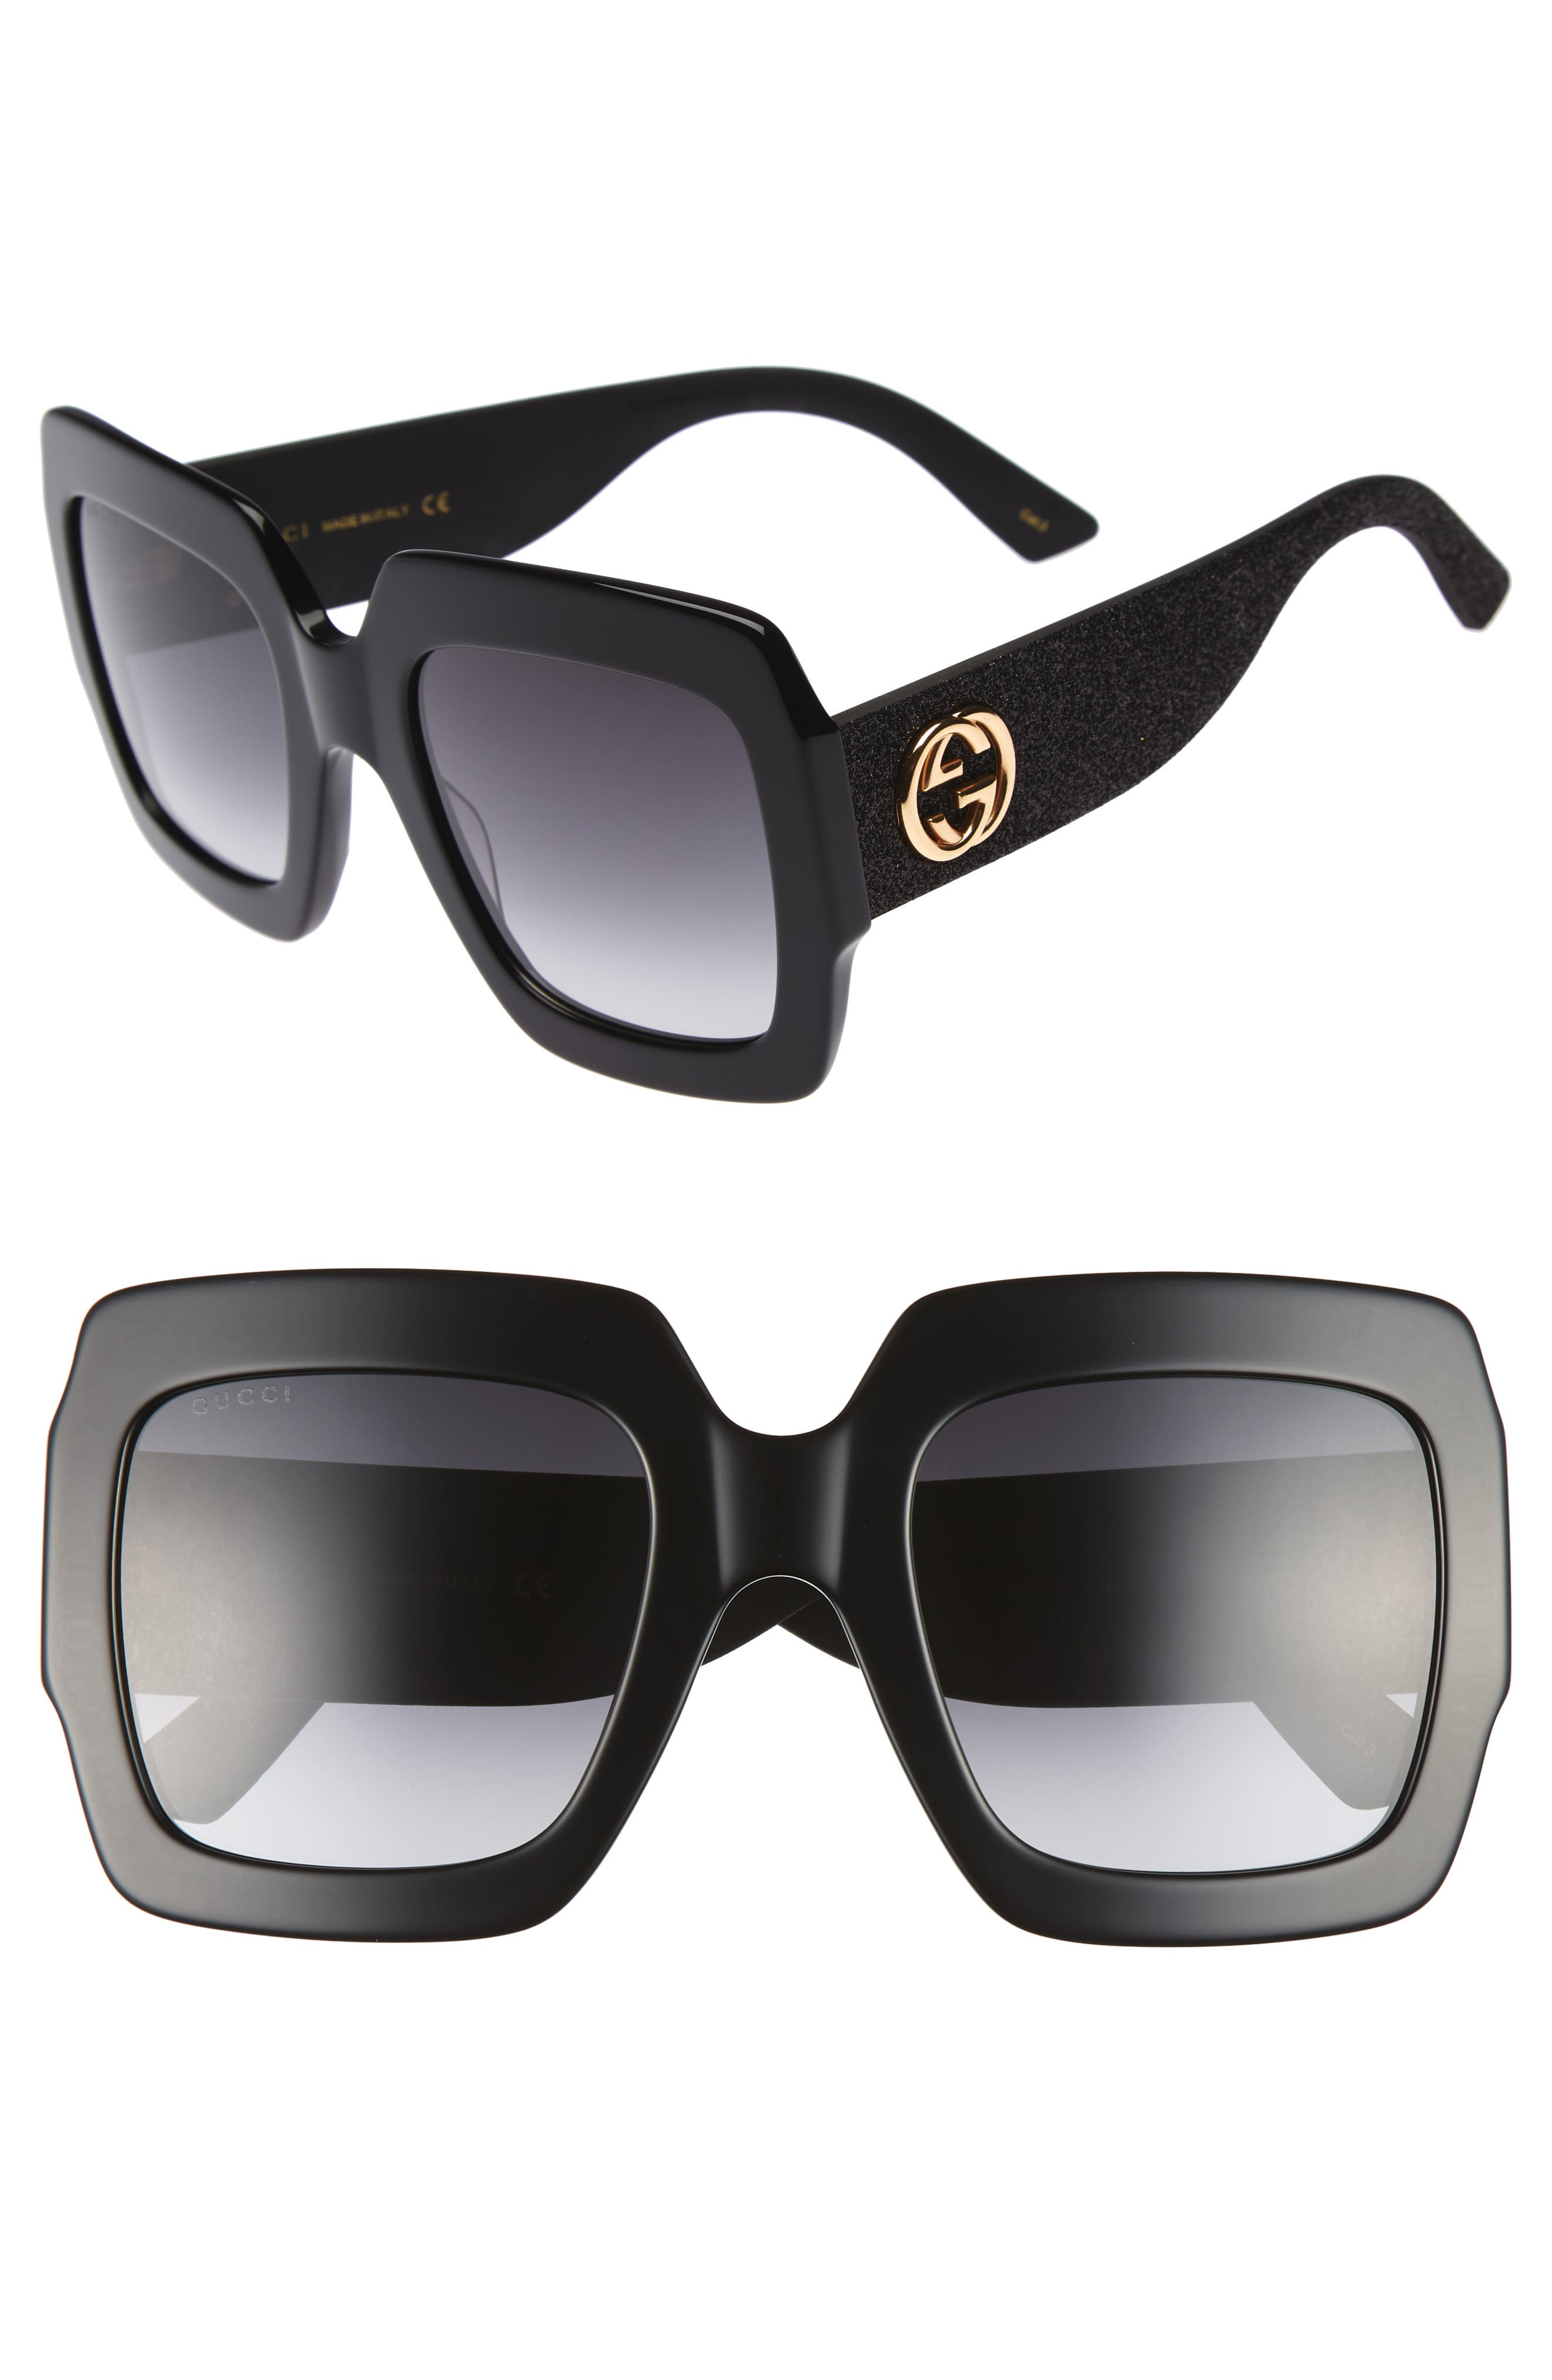 Gucci 5m Square Sunglasses - Black/ Grey